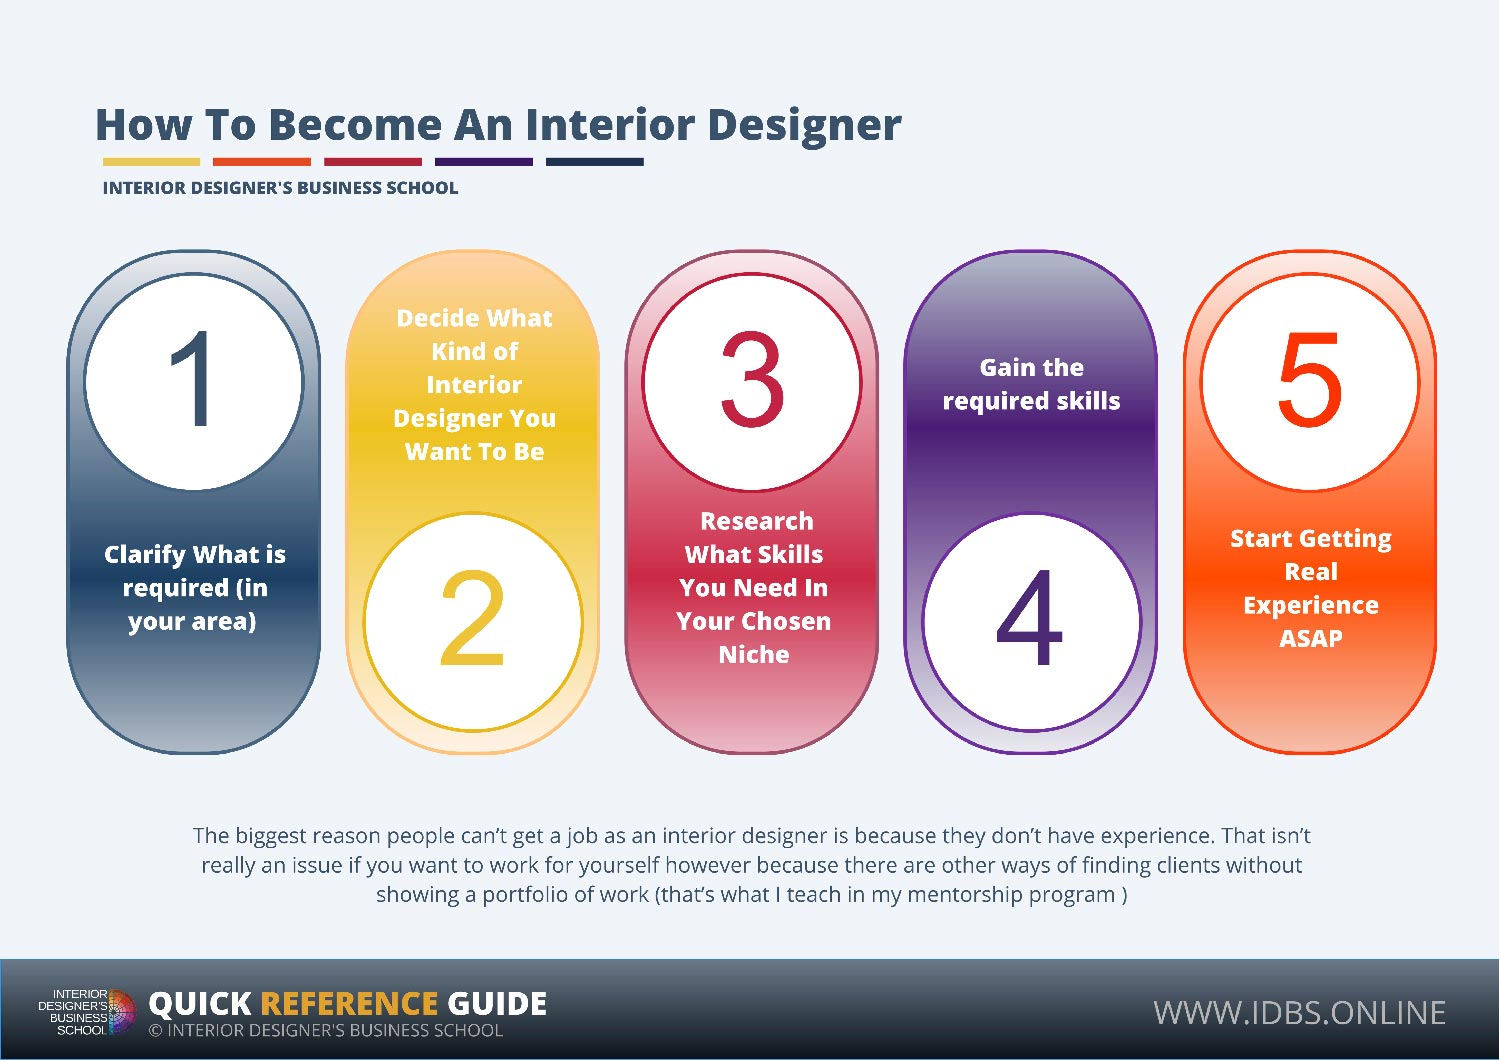 How to become an interior designer online interior design school idbs for How to become an interior designer online